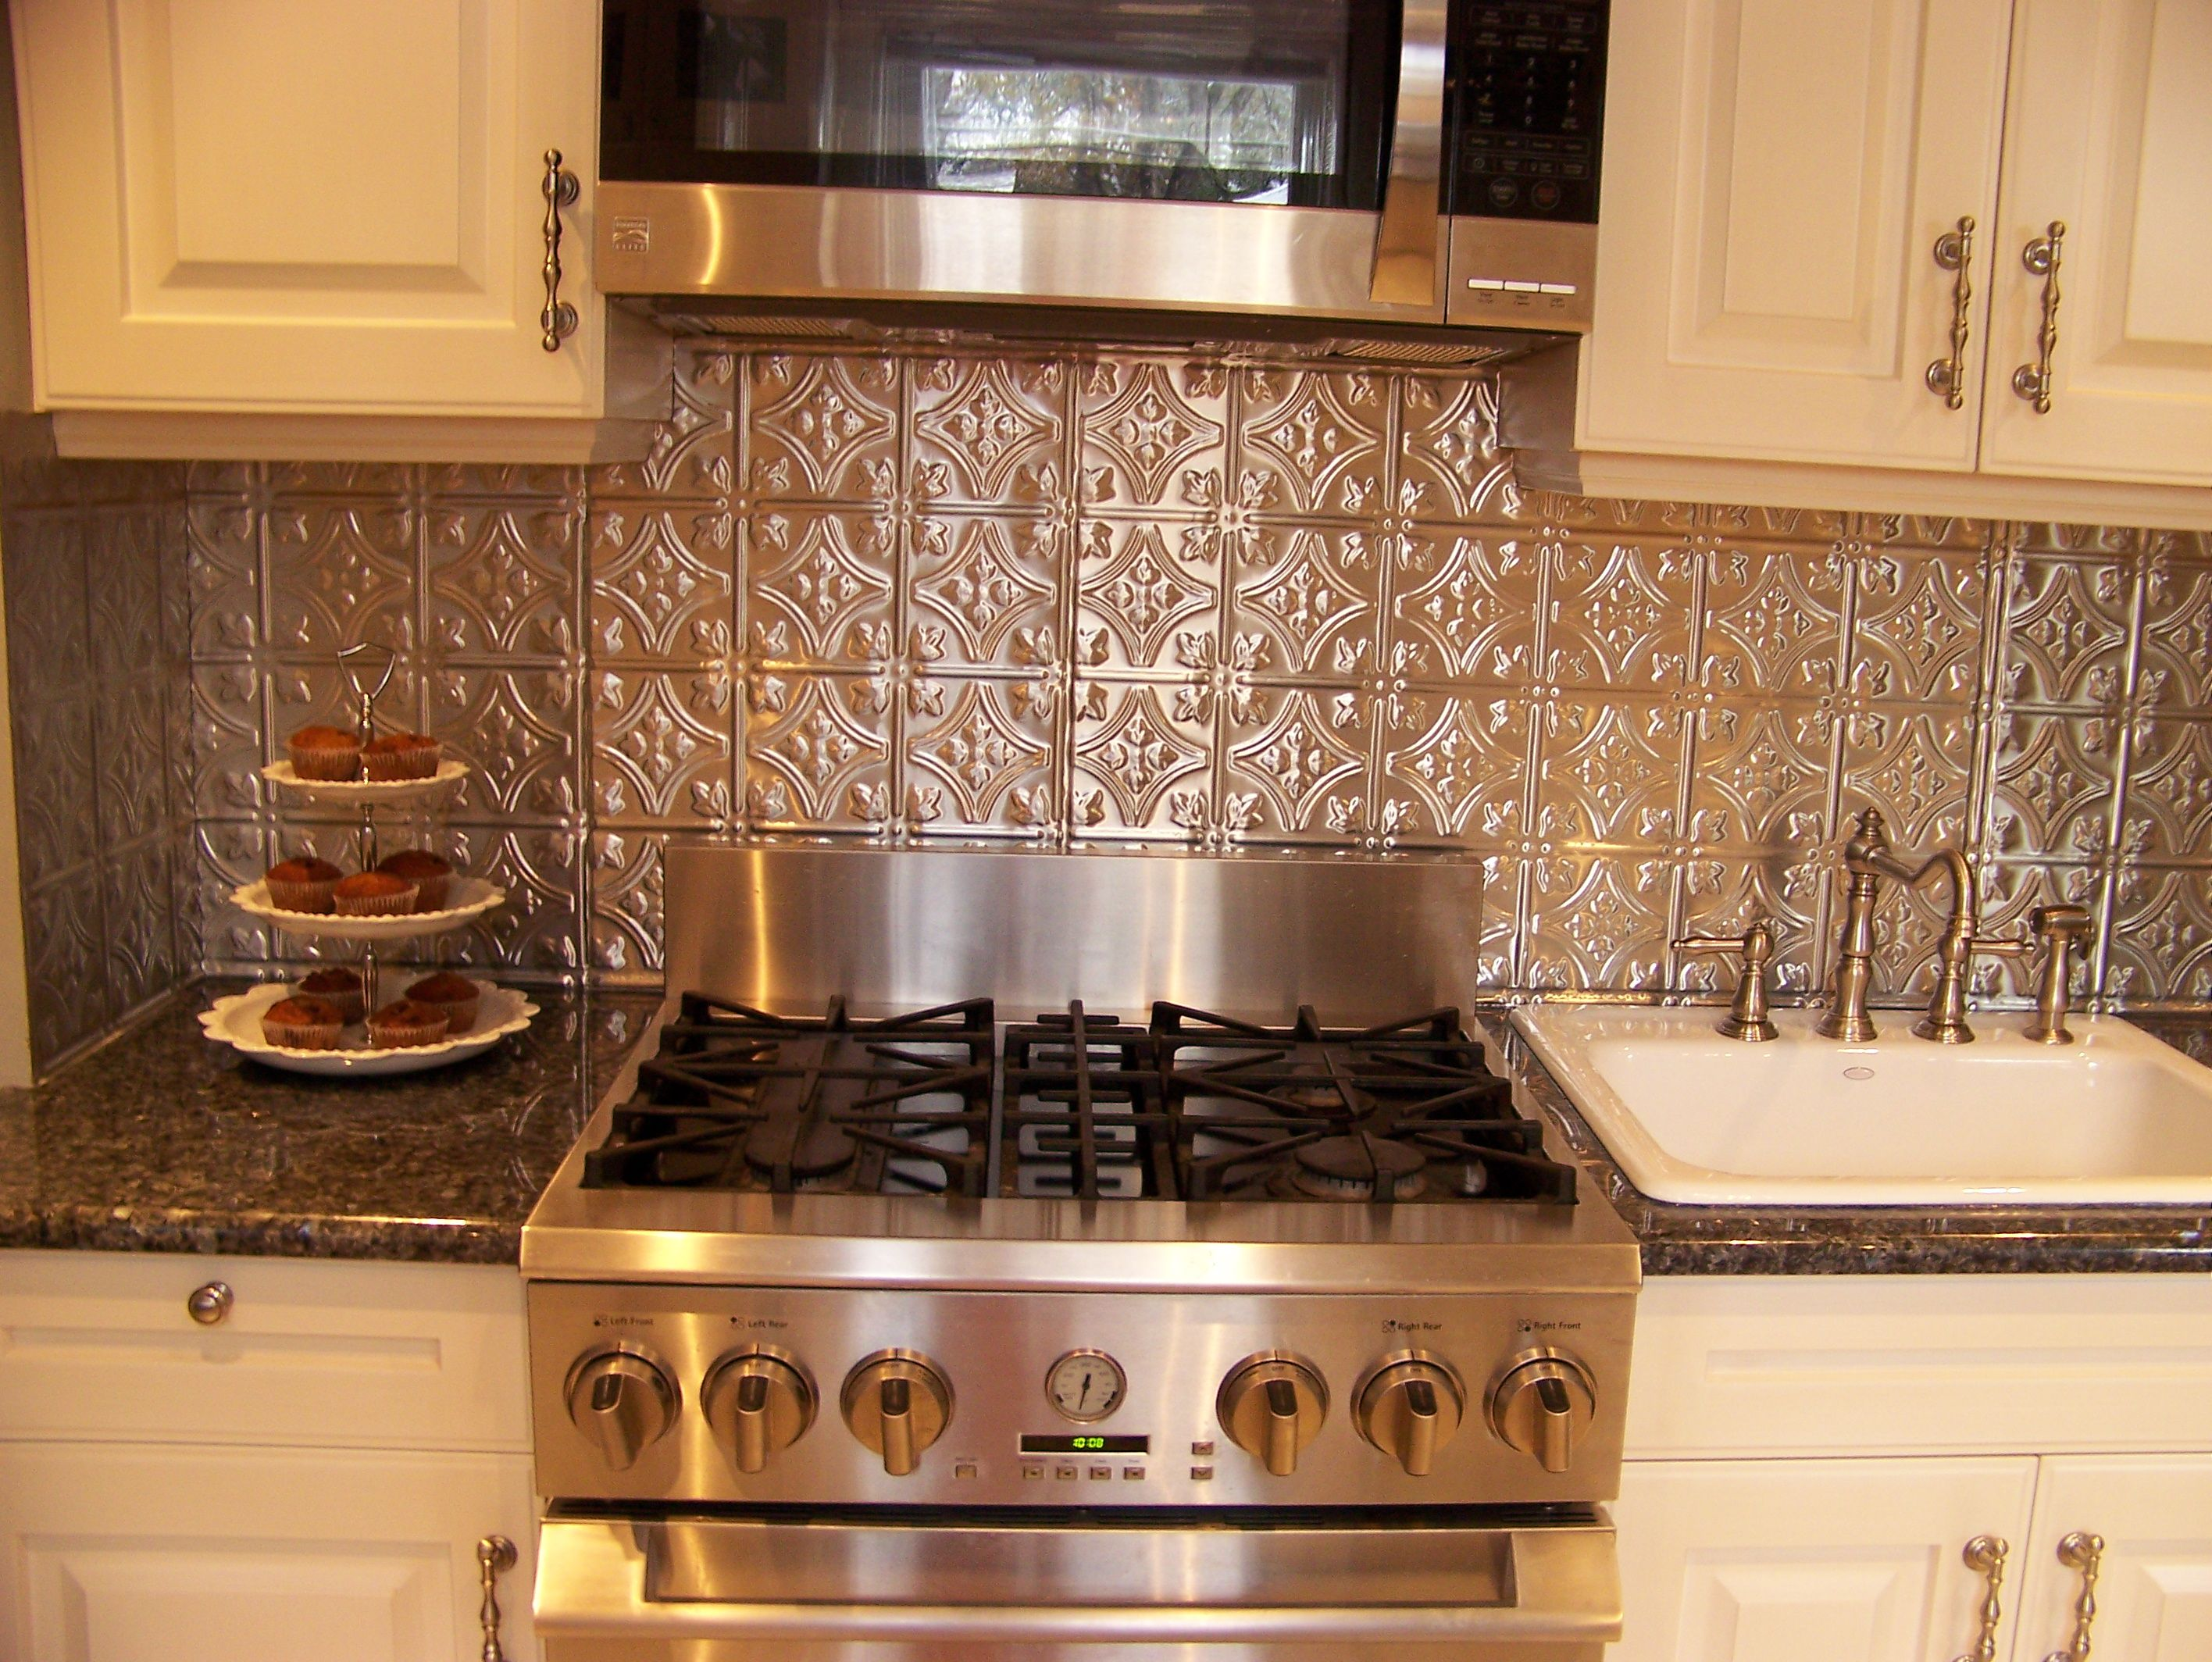 - Princess Victoria - Aluminum Backsplash Tile - #0604 Tin